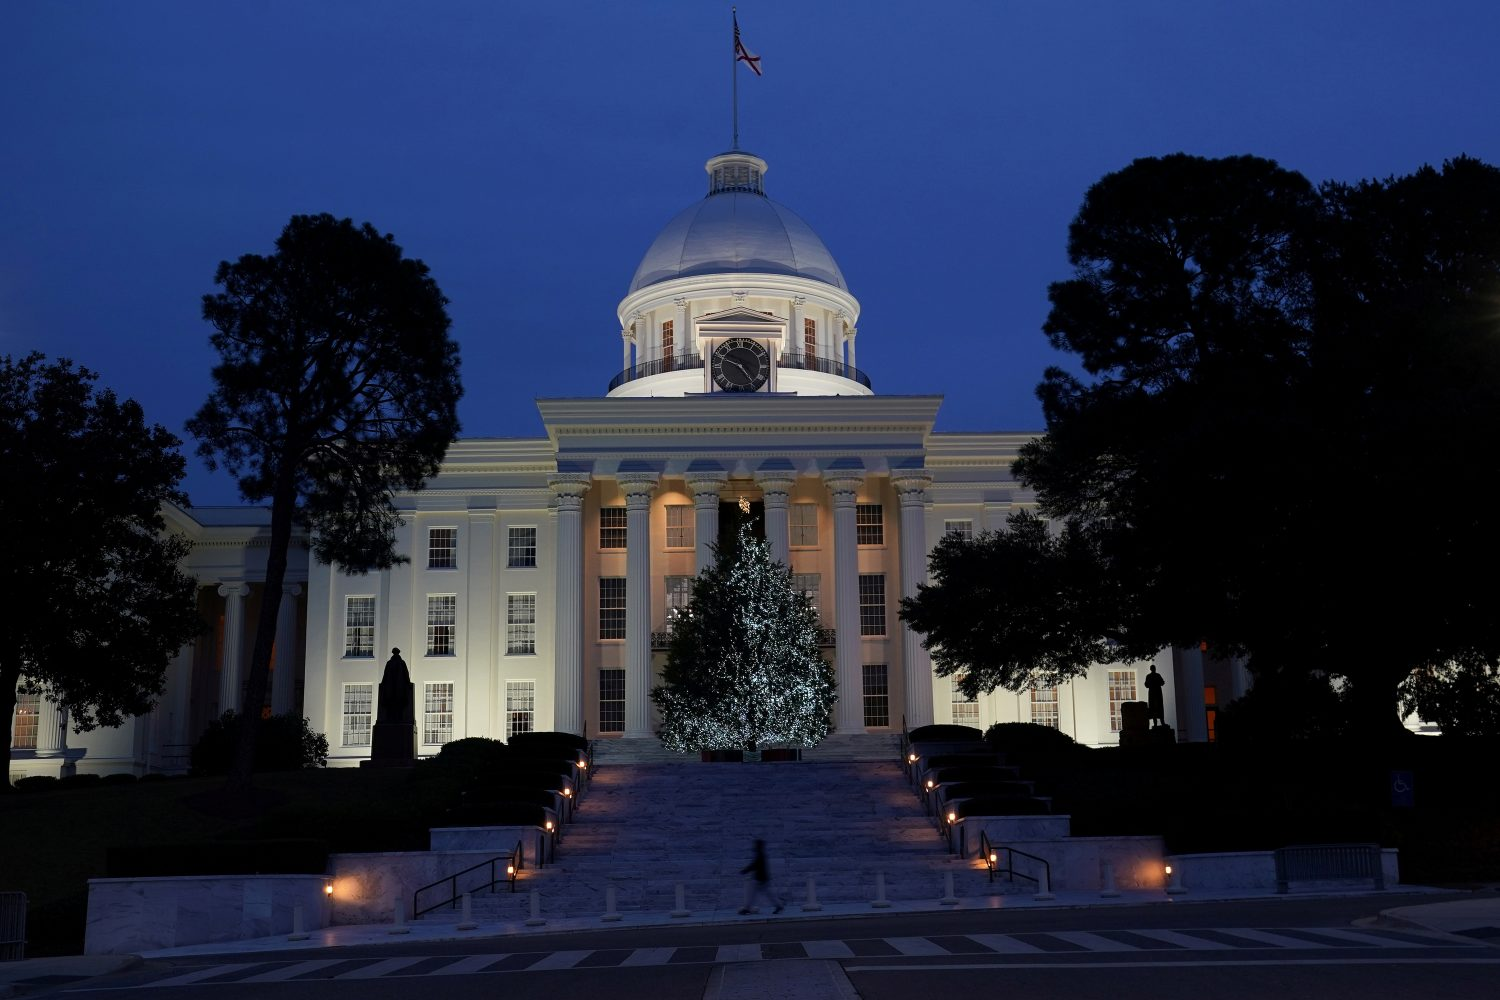 FILE PHOTO: The Alabama State Capitol building is pictured in Montgomery, Alabama, U.S., December 14, 2017. REUTERS/Carlo Allegri/File Photo